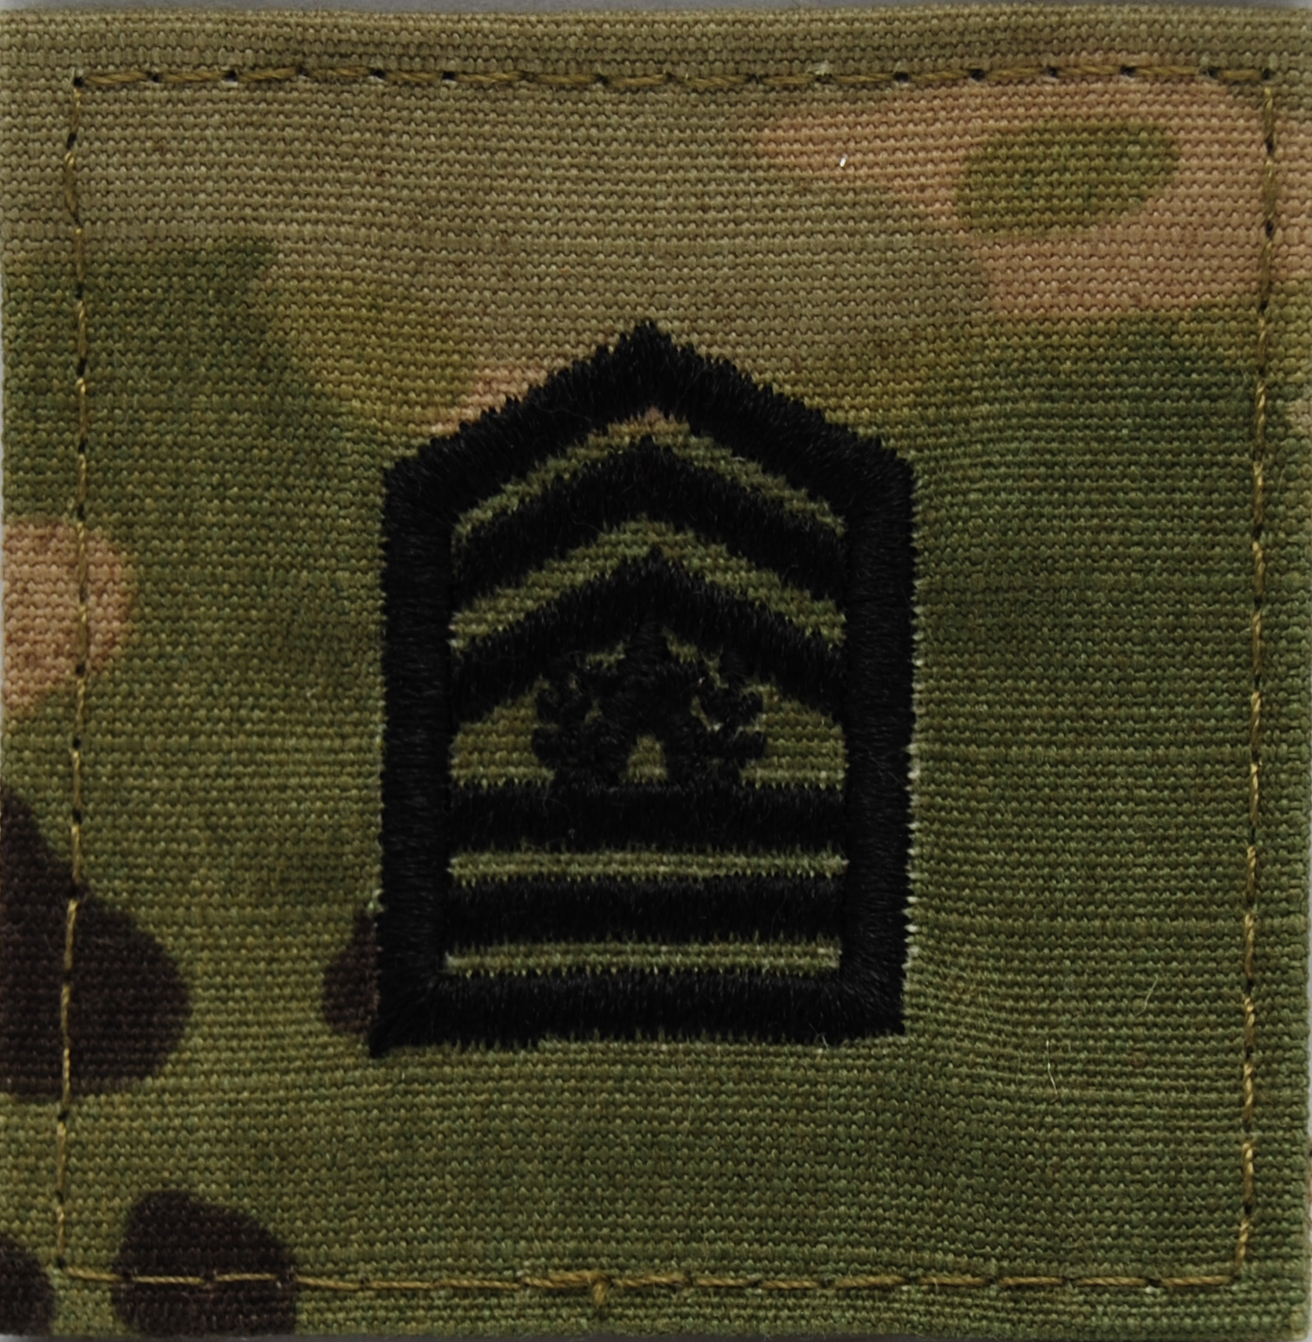 CSM OCP Army Cadet Rank (each)